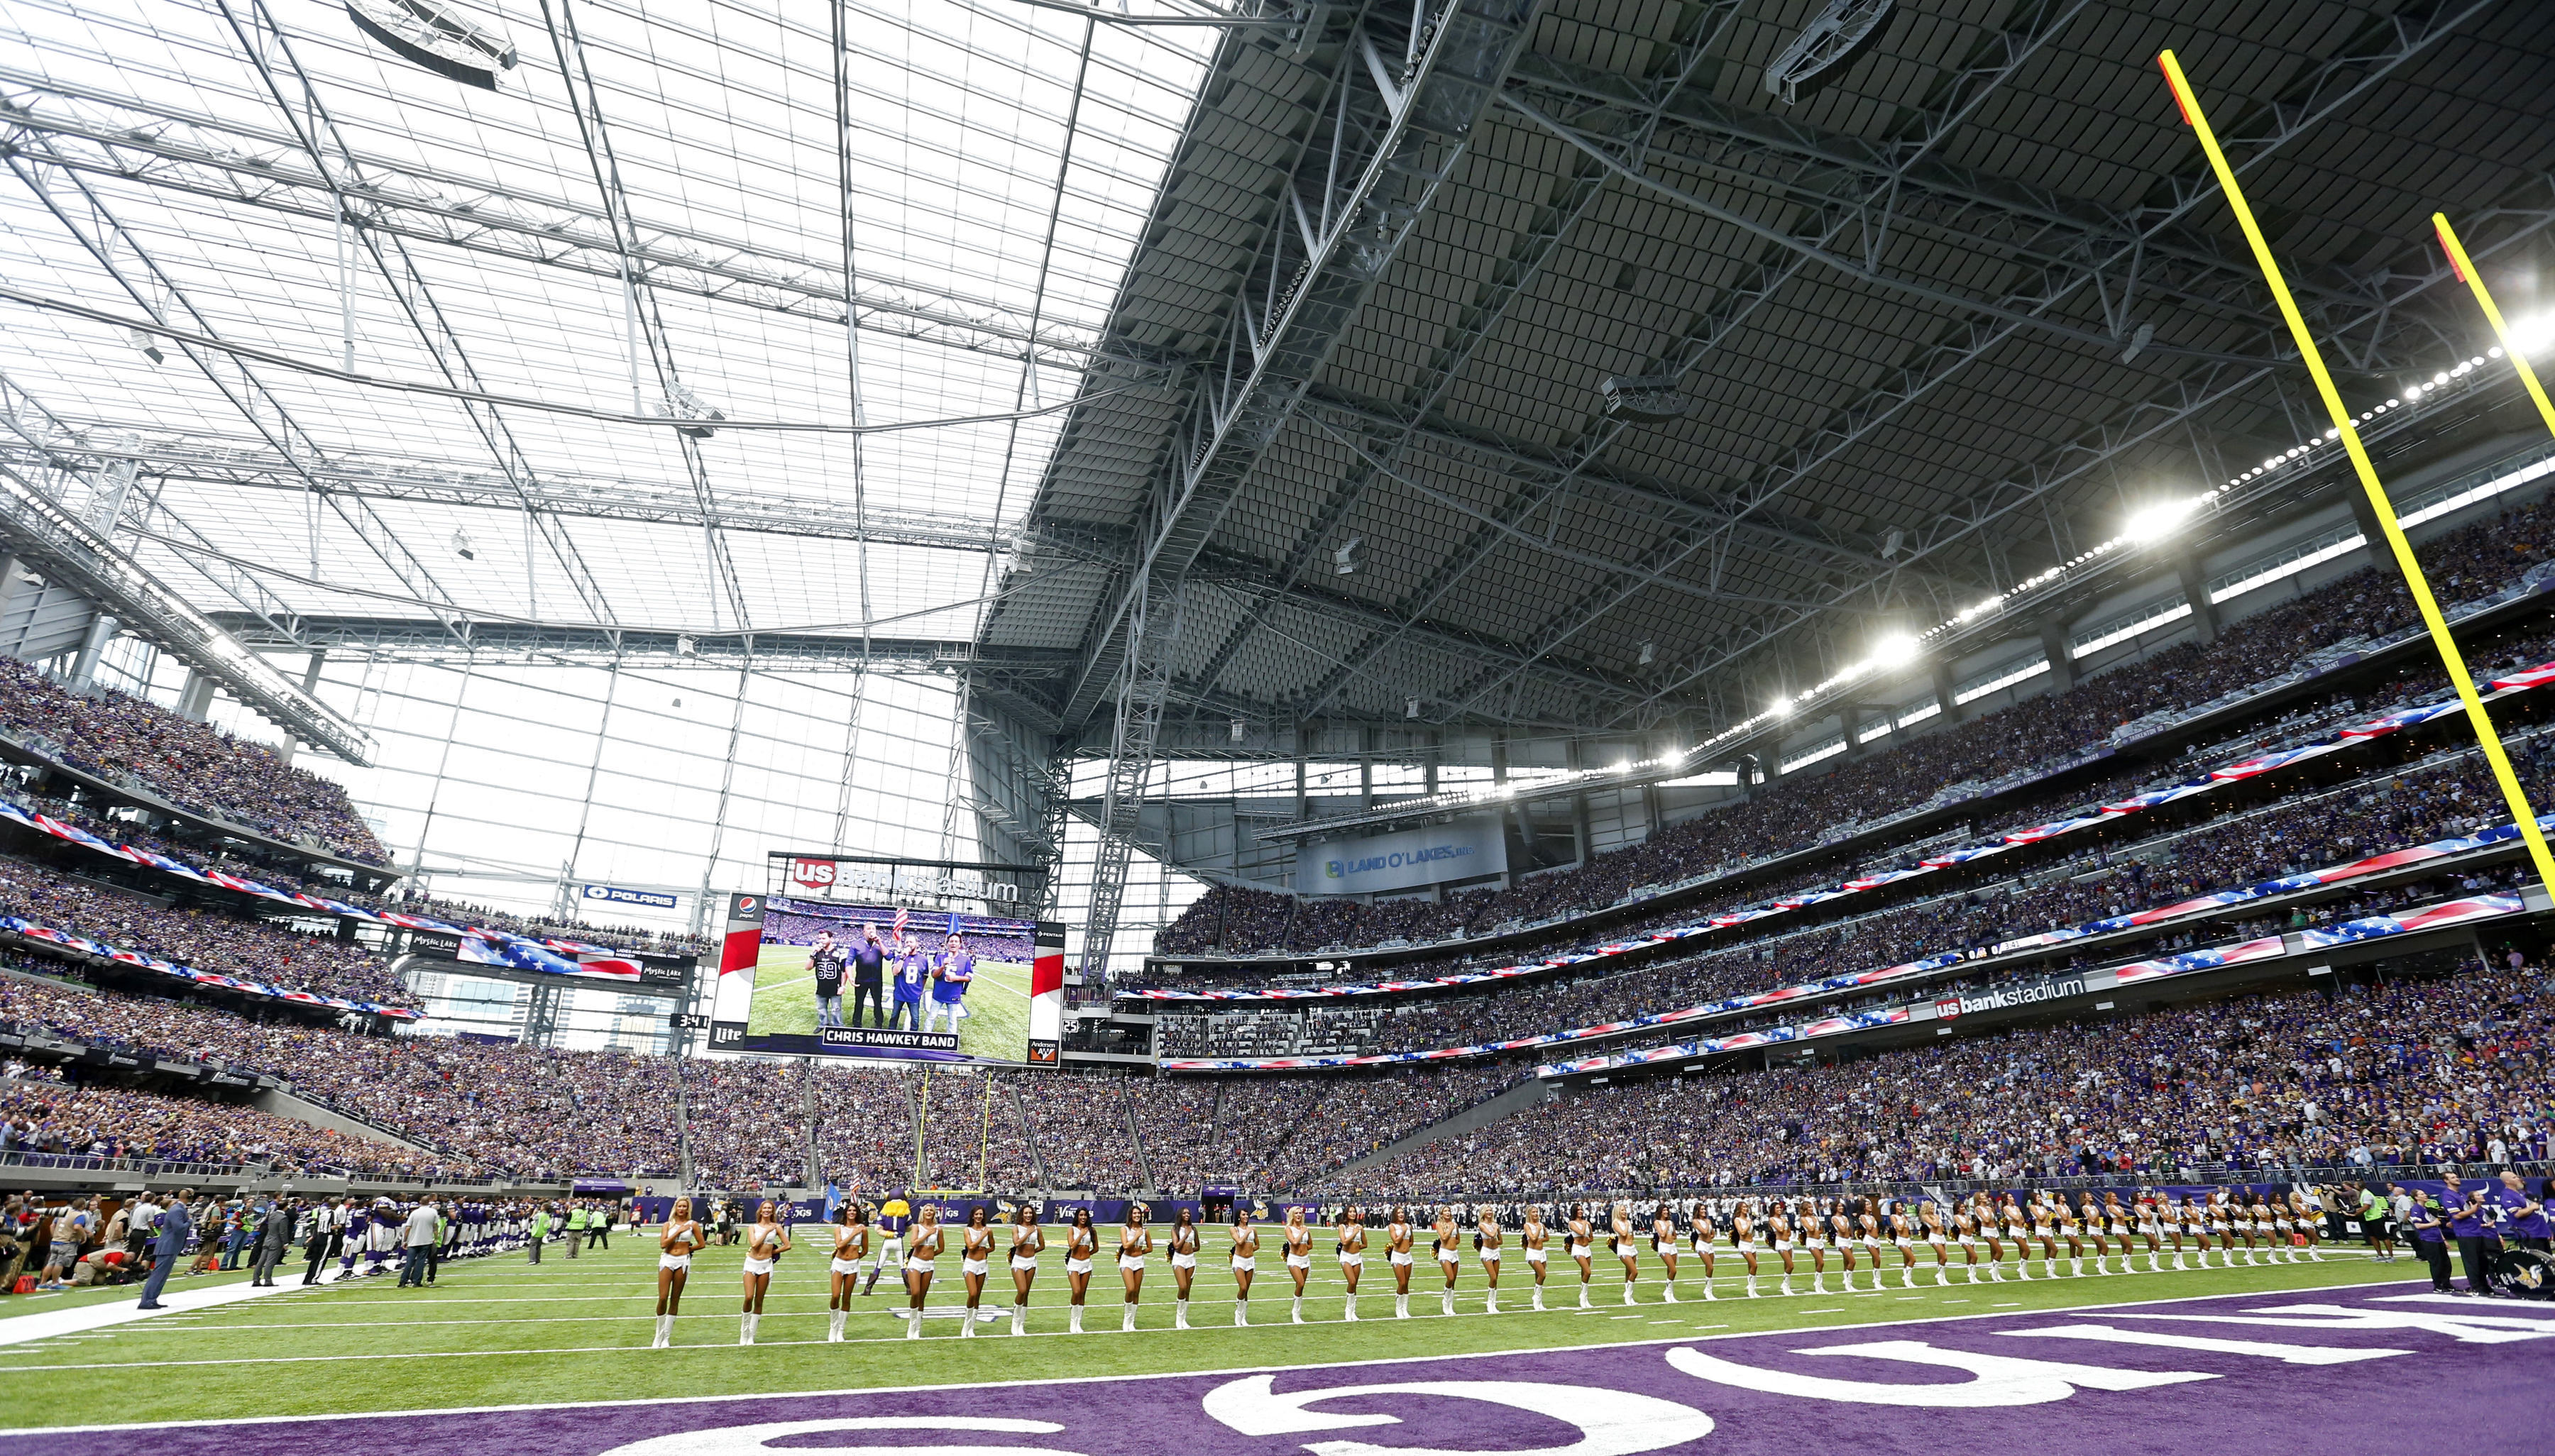 FILE - In this Aug. 28, 2016 file photo, Minnesota Vikings cheerleaders line up on the field before an NFL preseason football game against the San Diego Chargers in Minneapolis. The Vikings will host the Green Bay Packers in the first regular season game